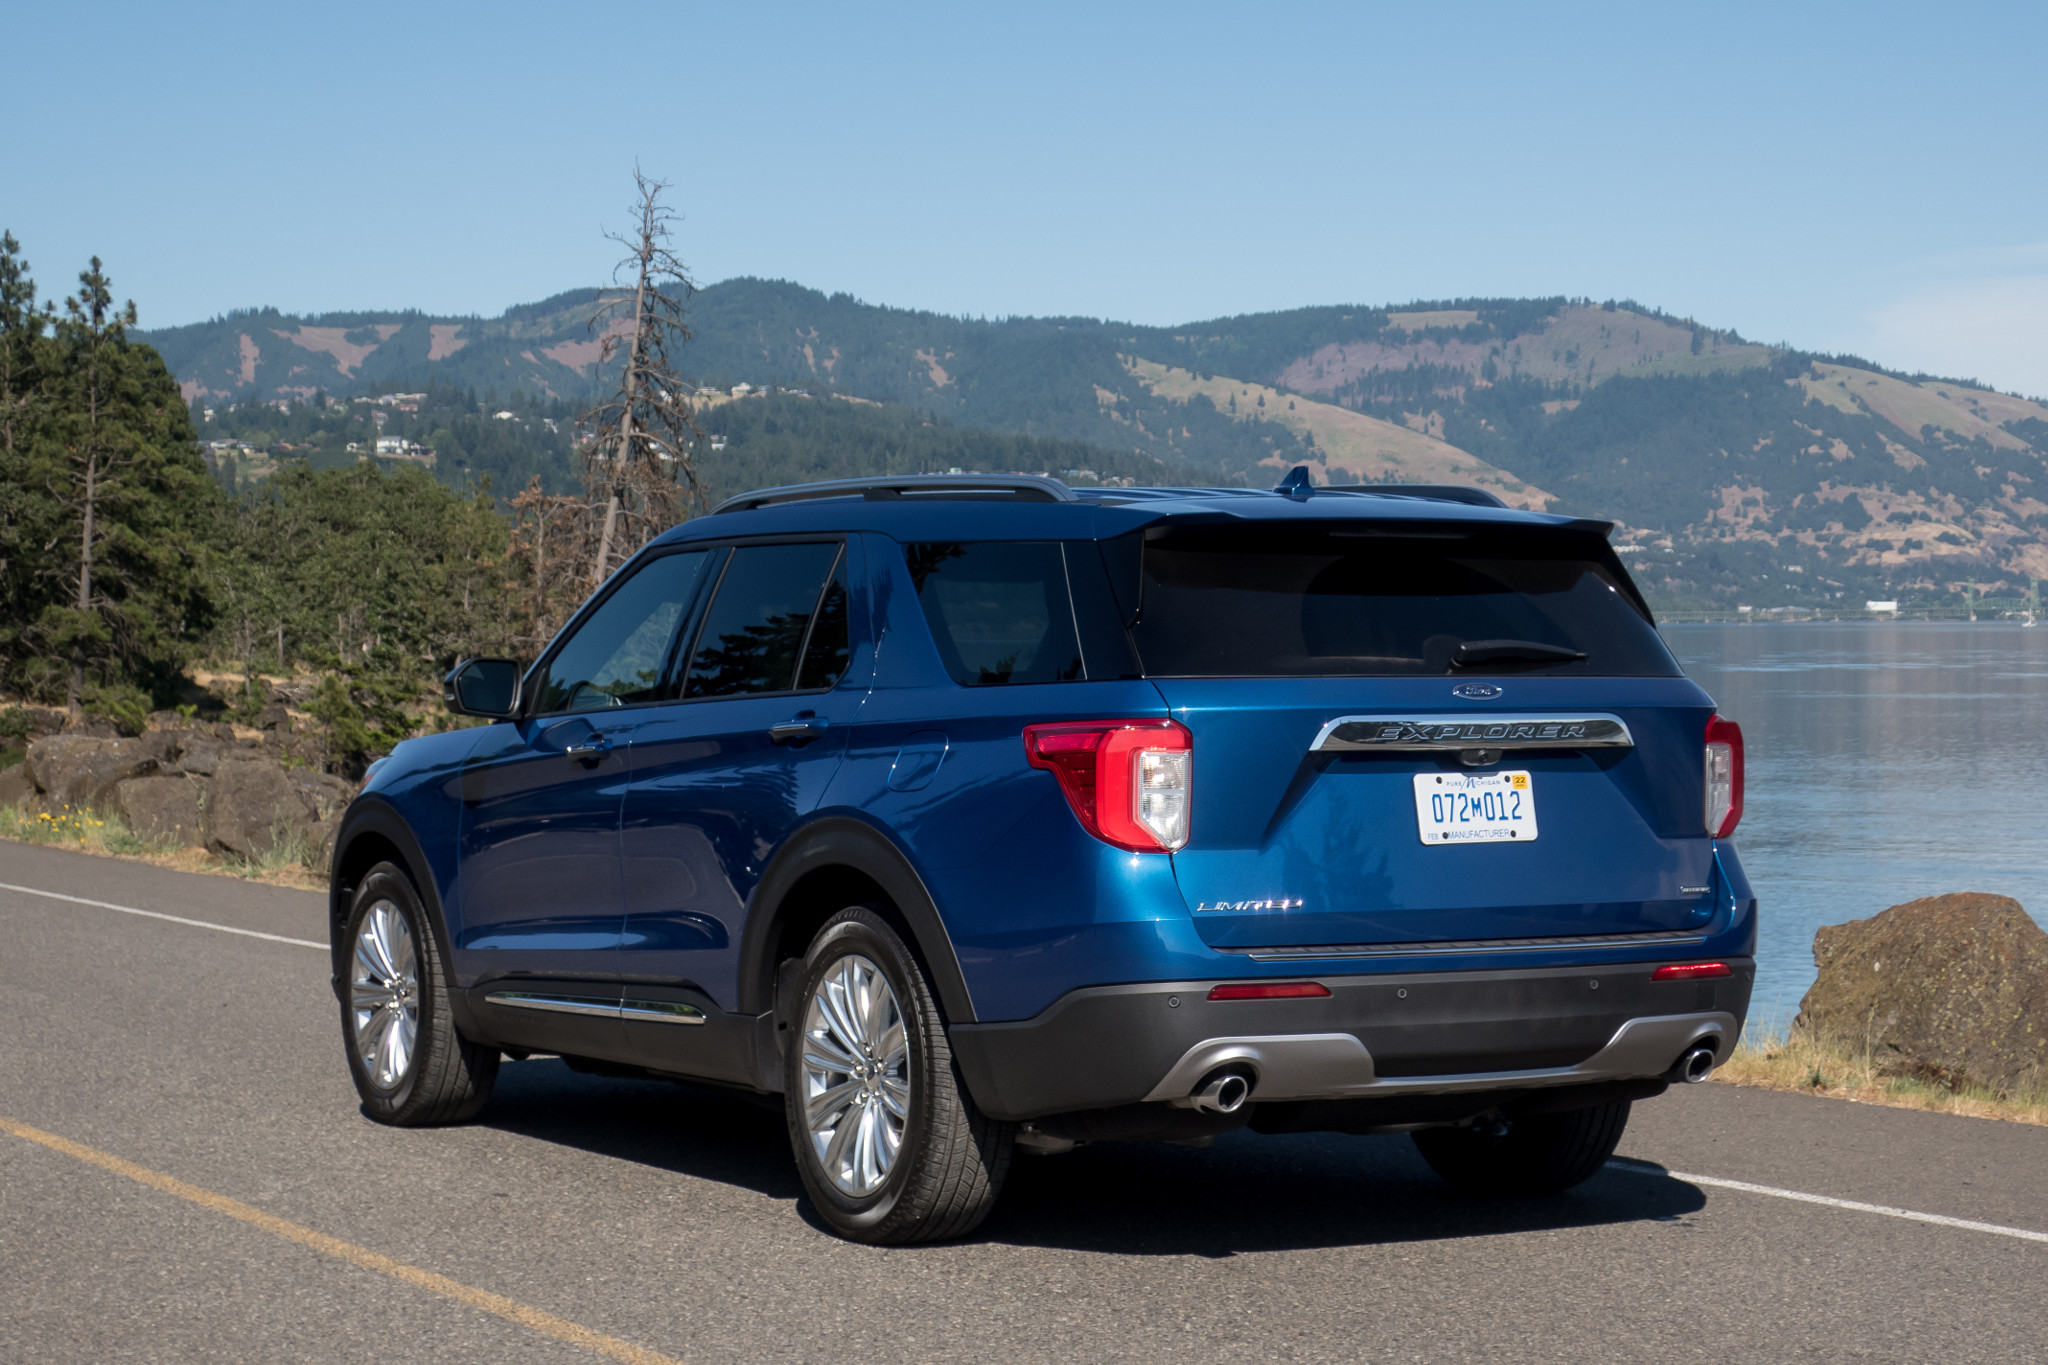 02-ford-explorer-hybrid-limited-2020-angle--blue--exterior--rear.jpg